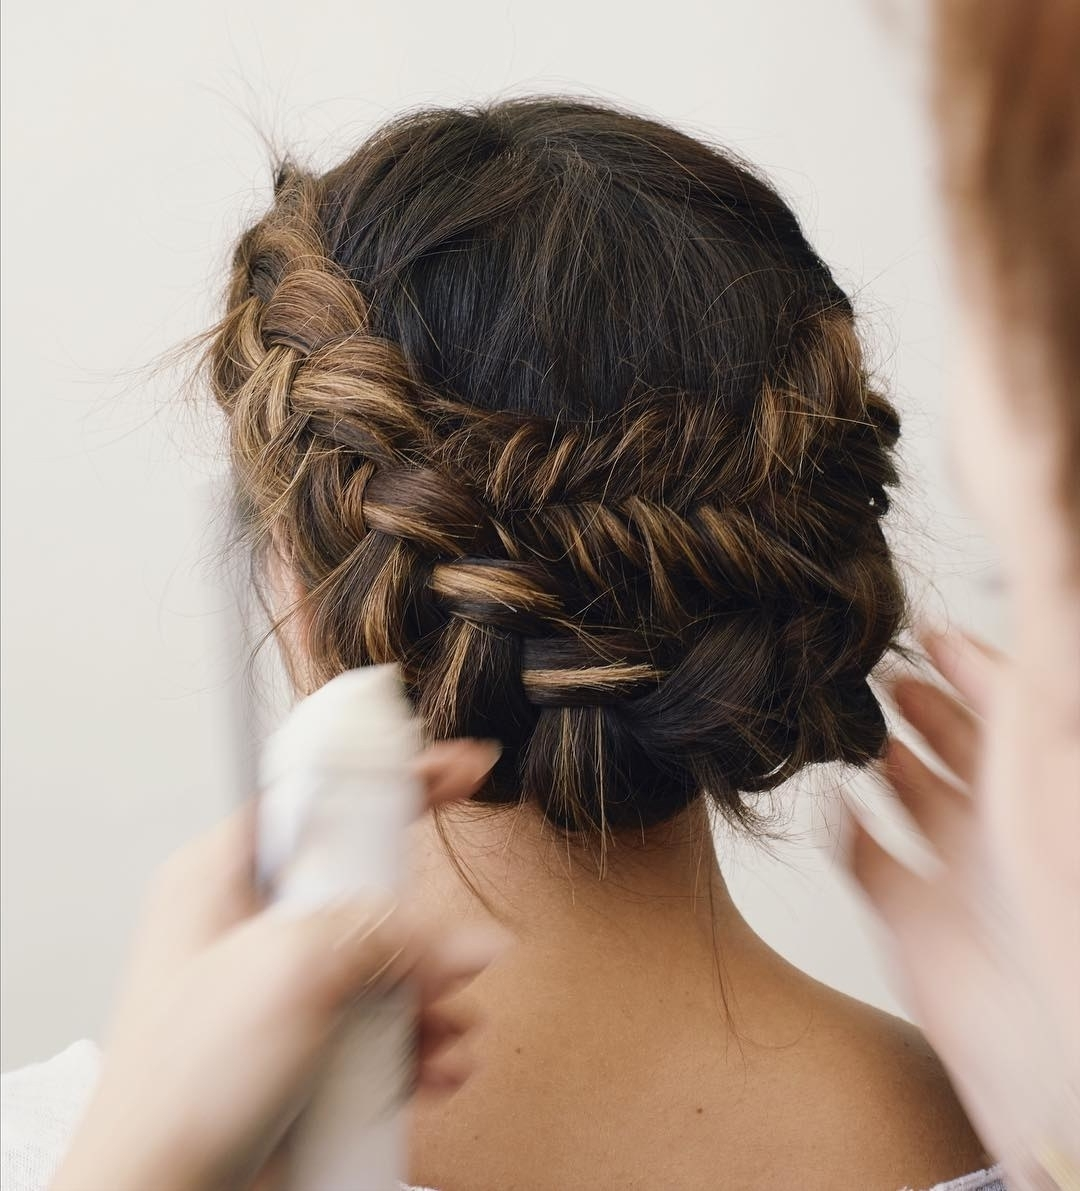 Brides Regarding Most Popular Outdoor Wedding Hairstyles For Bridesmaids (View 15 of 15)